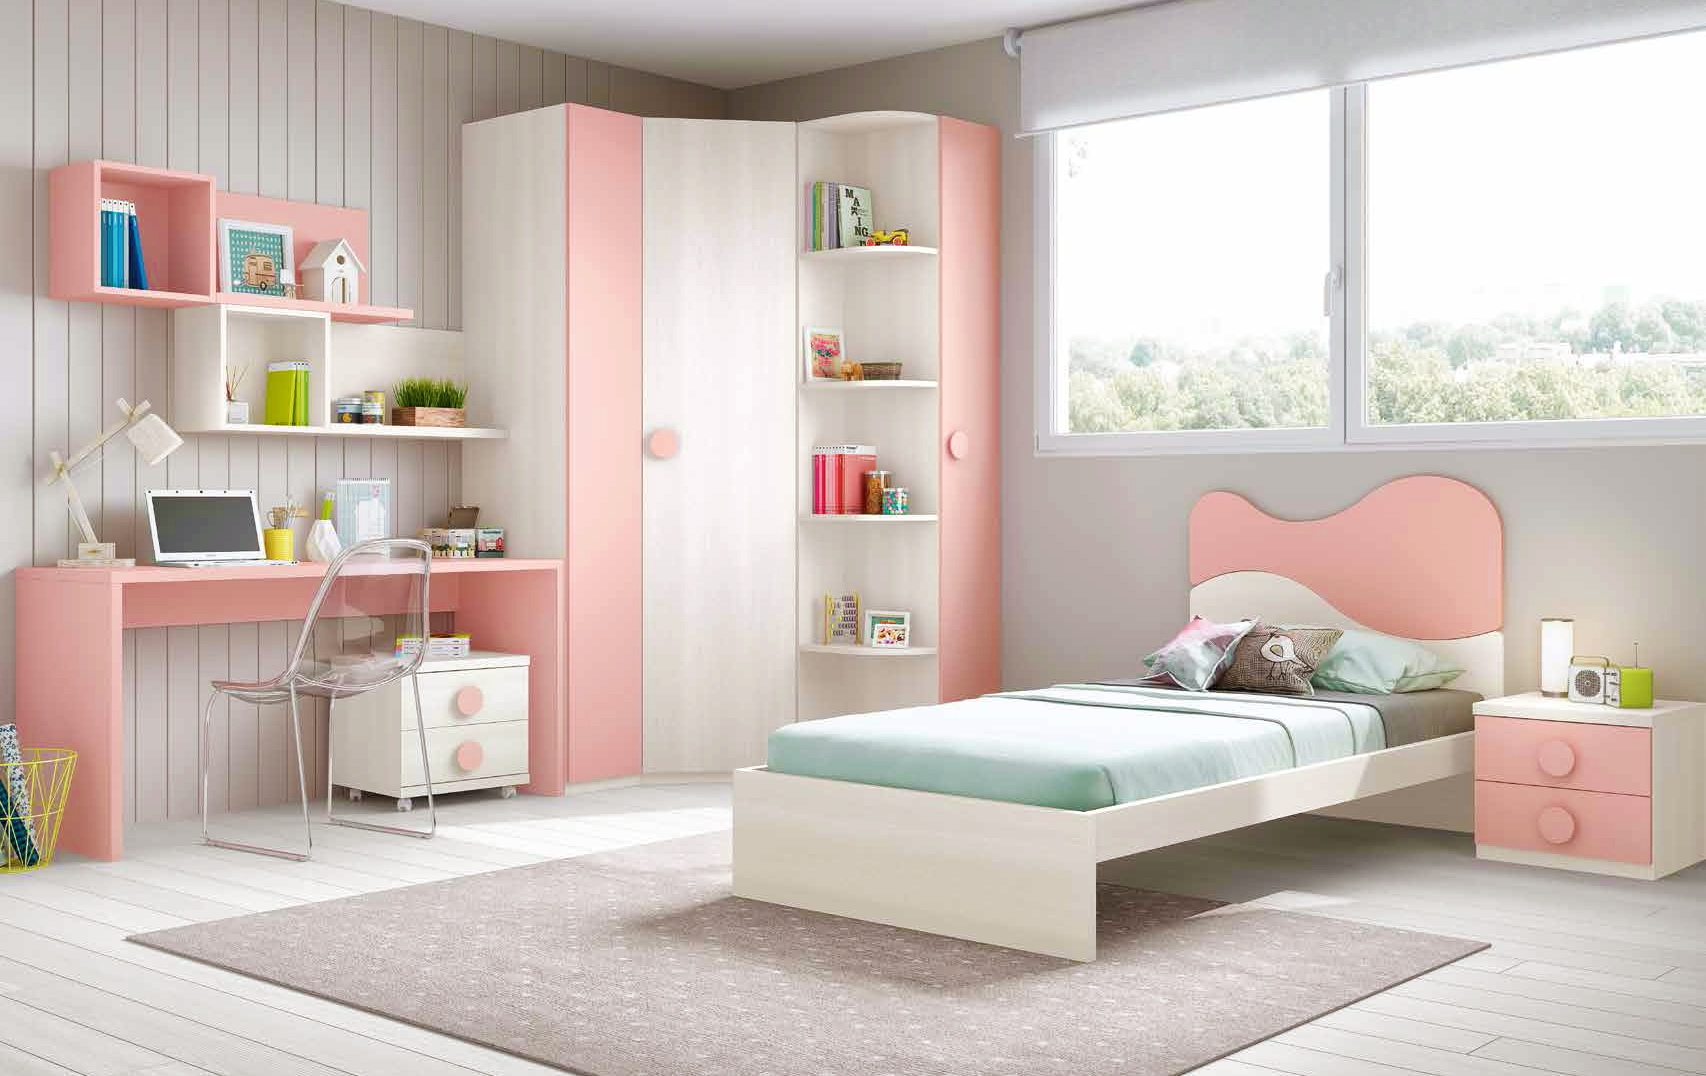 chambre de fille simple avec des id es int ressantes pour la conception de la chambre. Black Bedroom Furniture Sets. Home Design Ideas